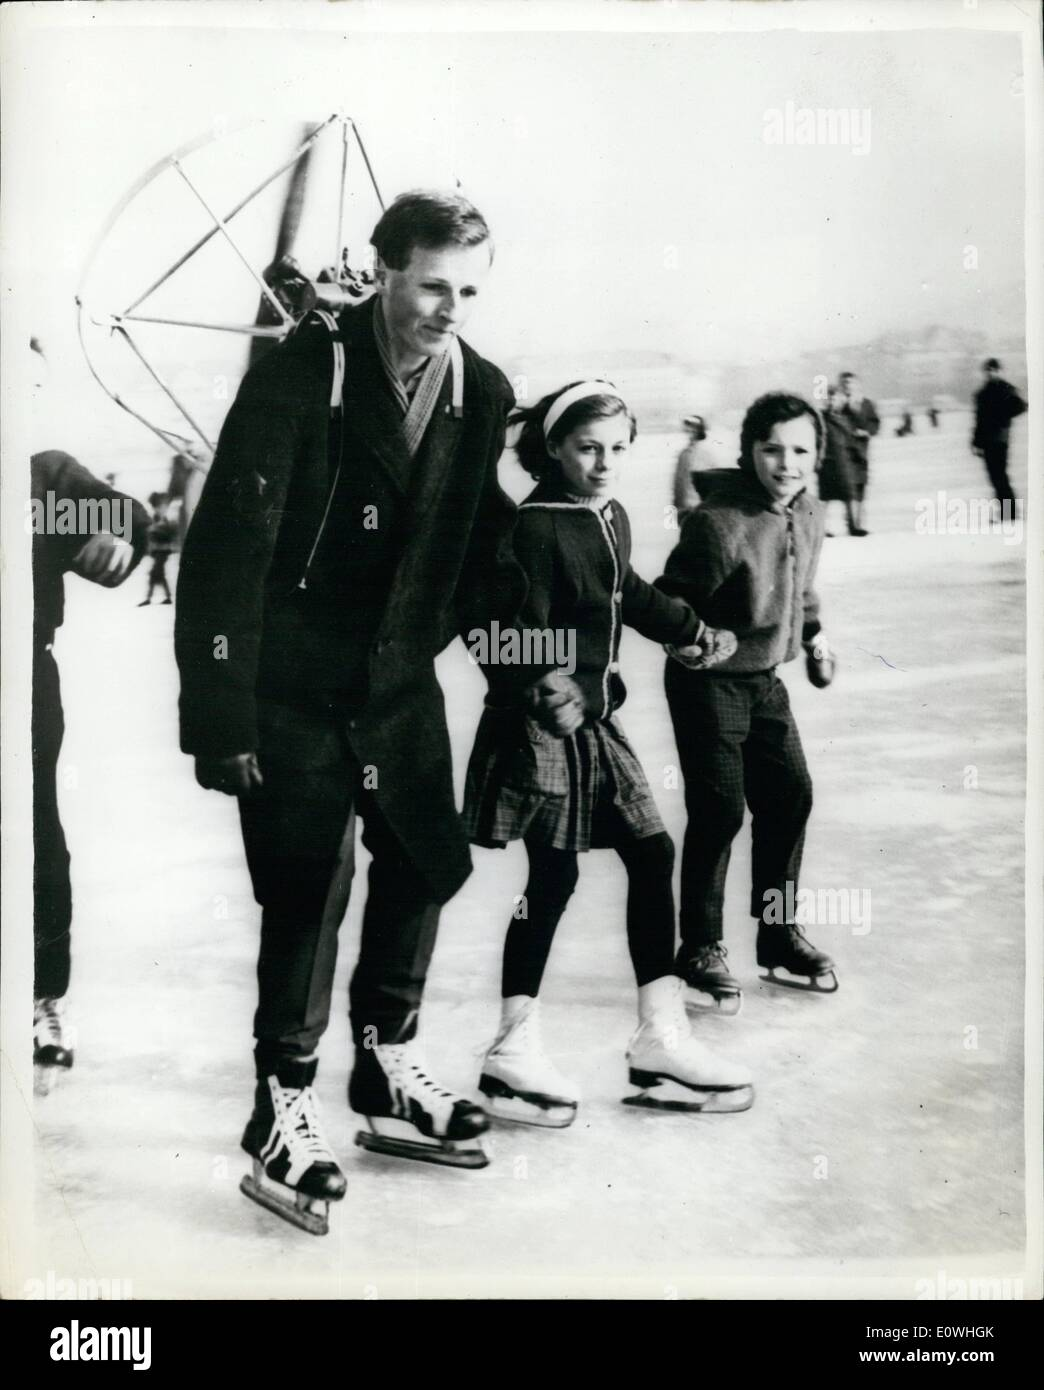 Feb. 02, 1963 - They Call Him - ''The Lazy Skater''... Automatic Propulsion - Over The Ice - In Zurich: Many eyebrows were lifted in surprise when this skater went on to the ice - on a frozen lake in Zurich - a few days ago - with on his back - his own invention - which he calls the ''Miniprop''.. It is like an enclosed propeller which propels him over the ice at something like 20 m.p.h. - Stock Image